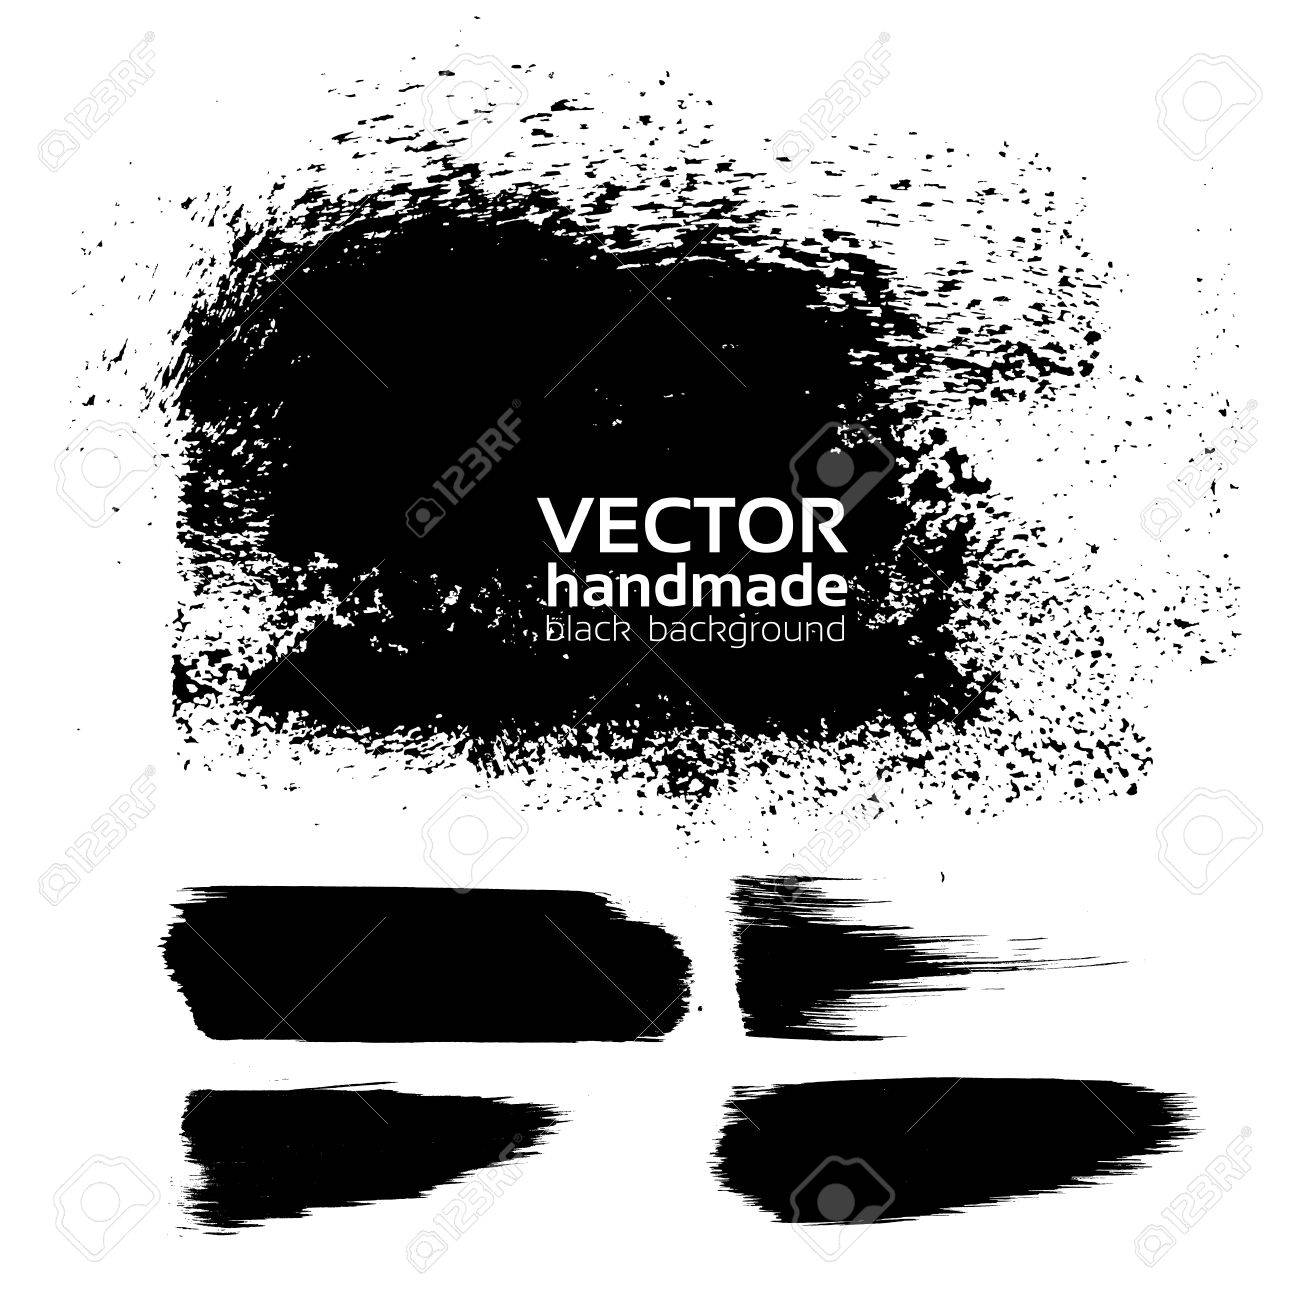 Handmade texture background from brush strokes Stock Vector - 16683398